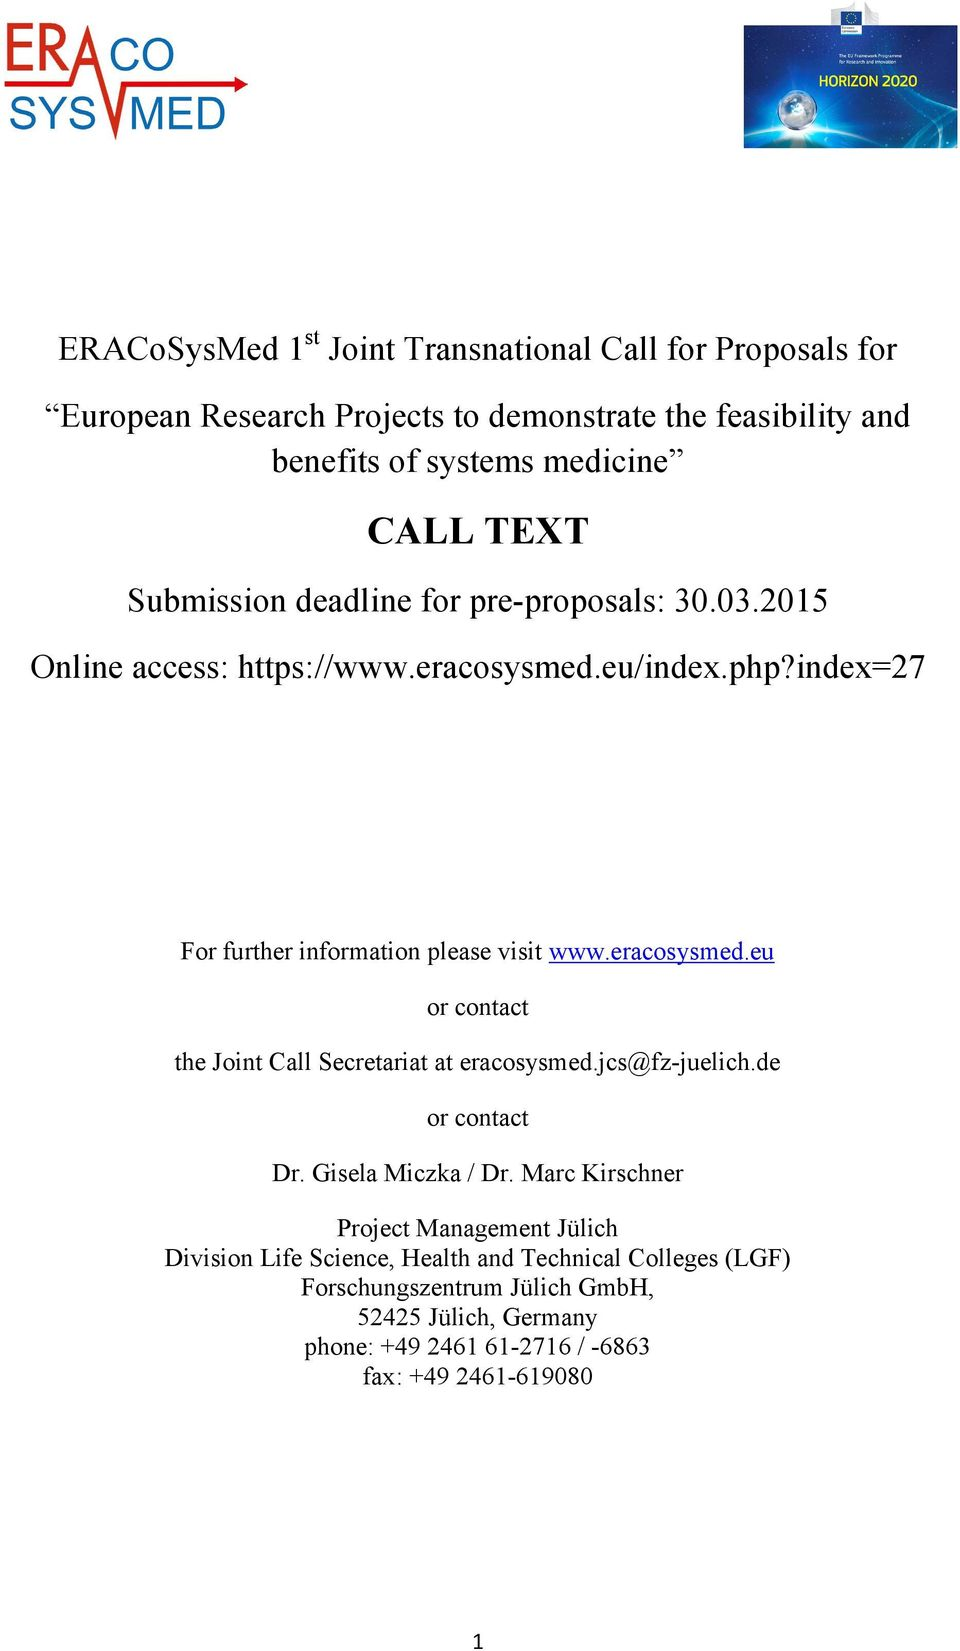 eracosysmed.eu or contact the Joint Call Secretariat at eracosysmed.jcs@fz-juelich.de or contact Dr. Gisela Miczka / Dr.